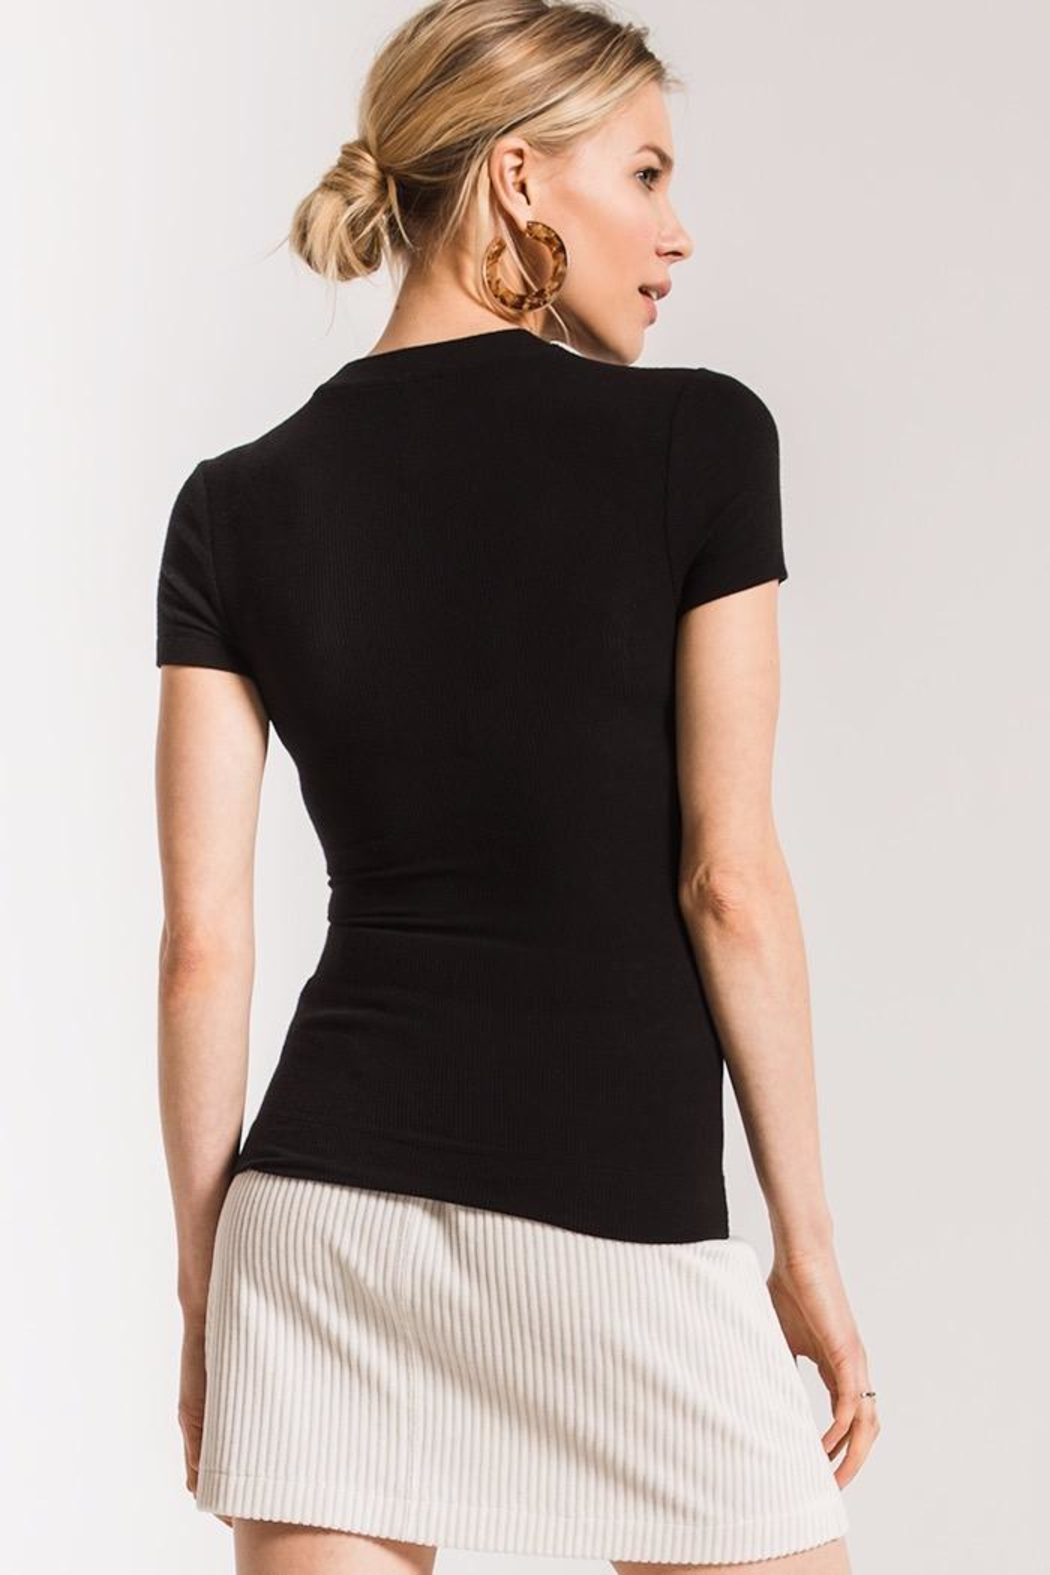 z supply Micro Rib Fitted Tee - Side Cropped Image